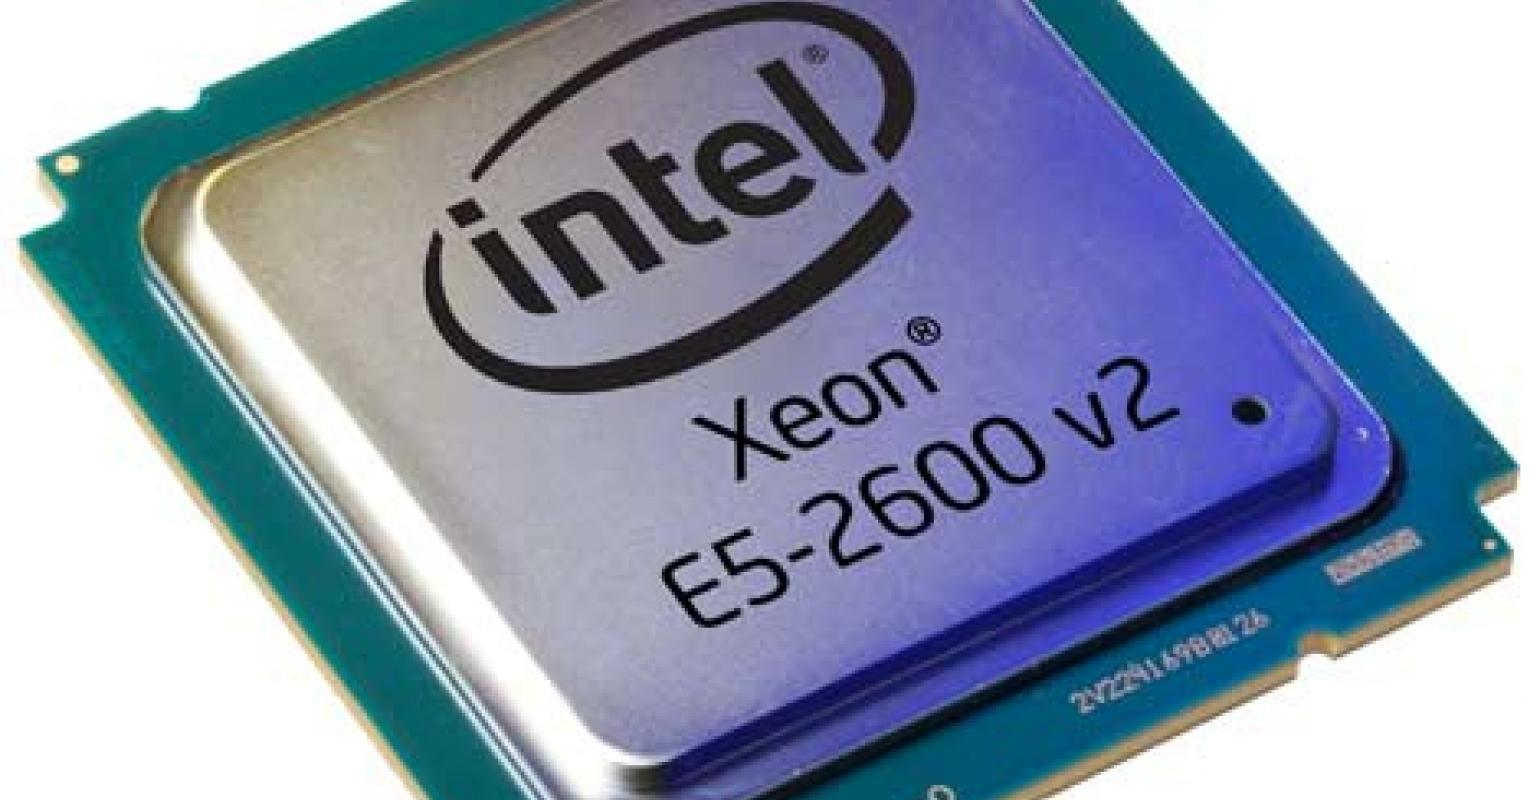 With New Xeon e5-2600 v2 Chips, Intel Addresses the Brawny